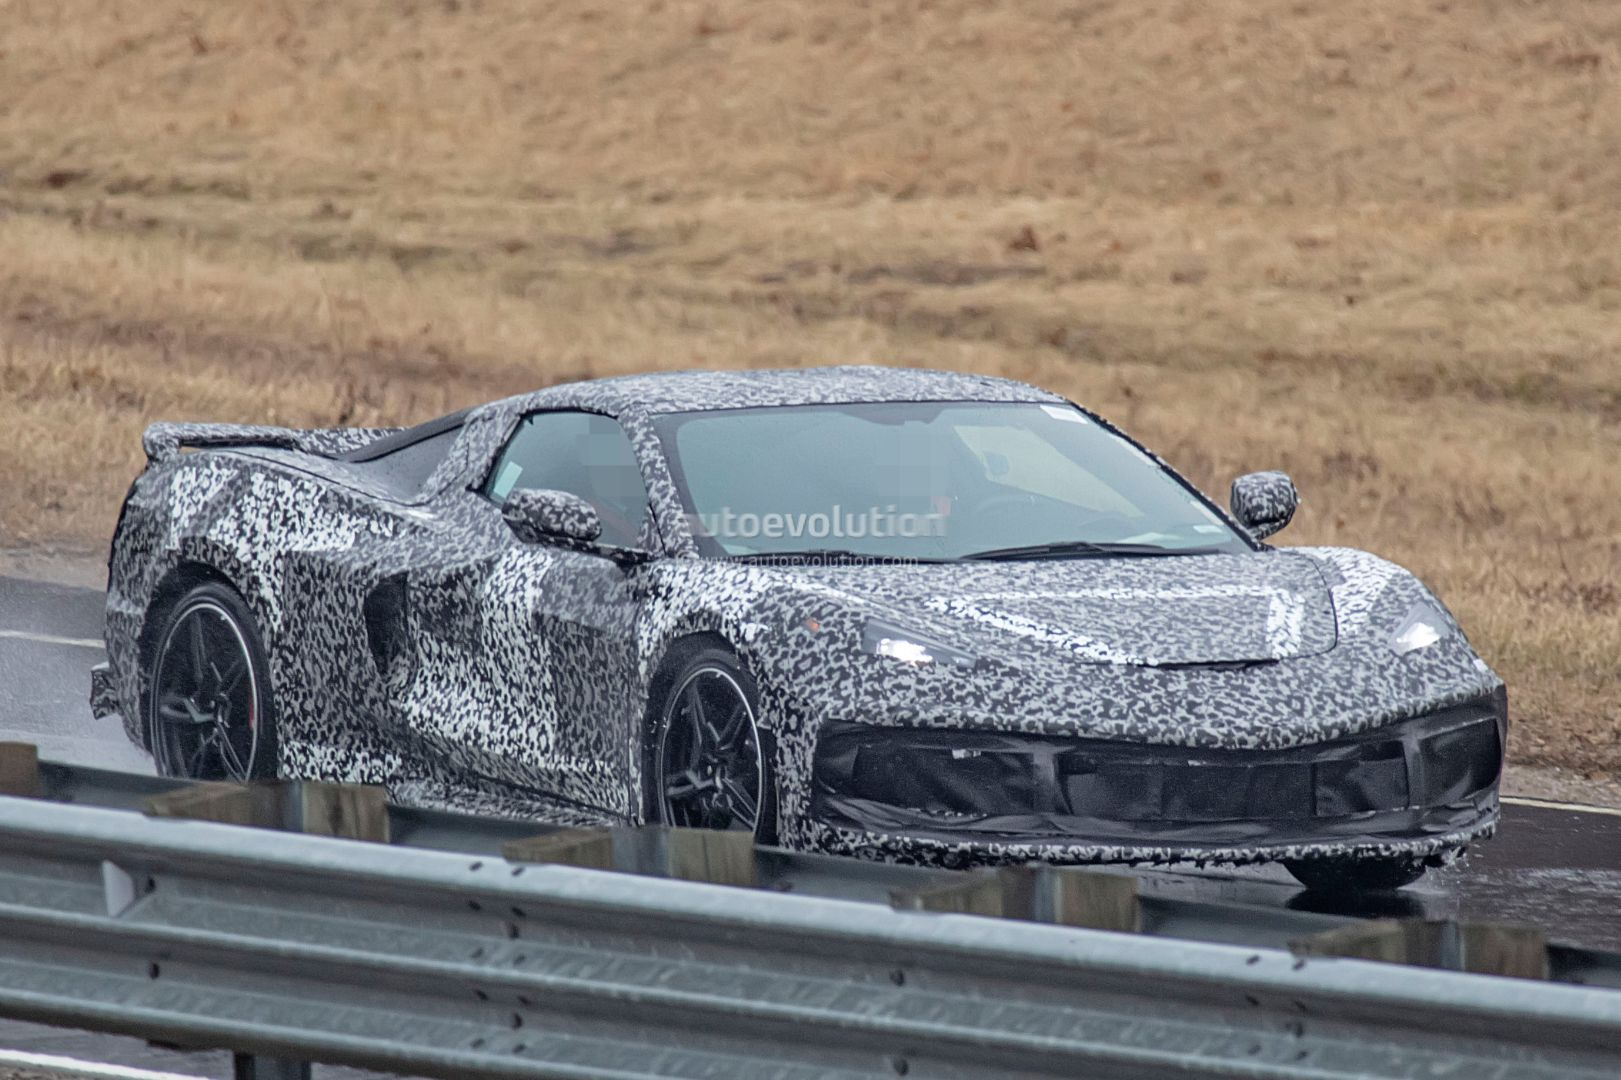 Mid Engined Corvette C8 Prototype Shows Details As Order